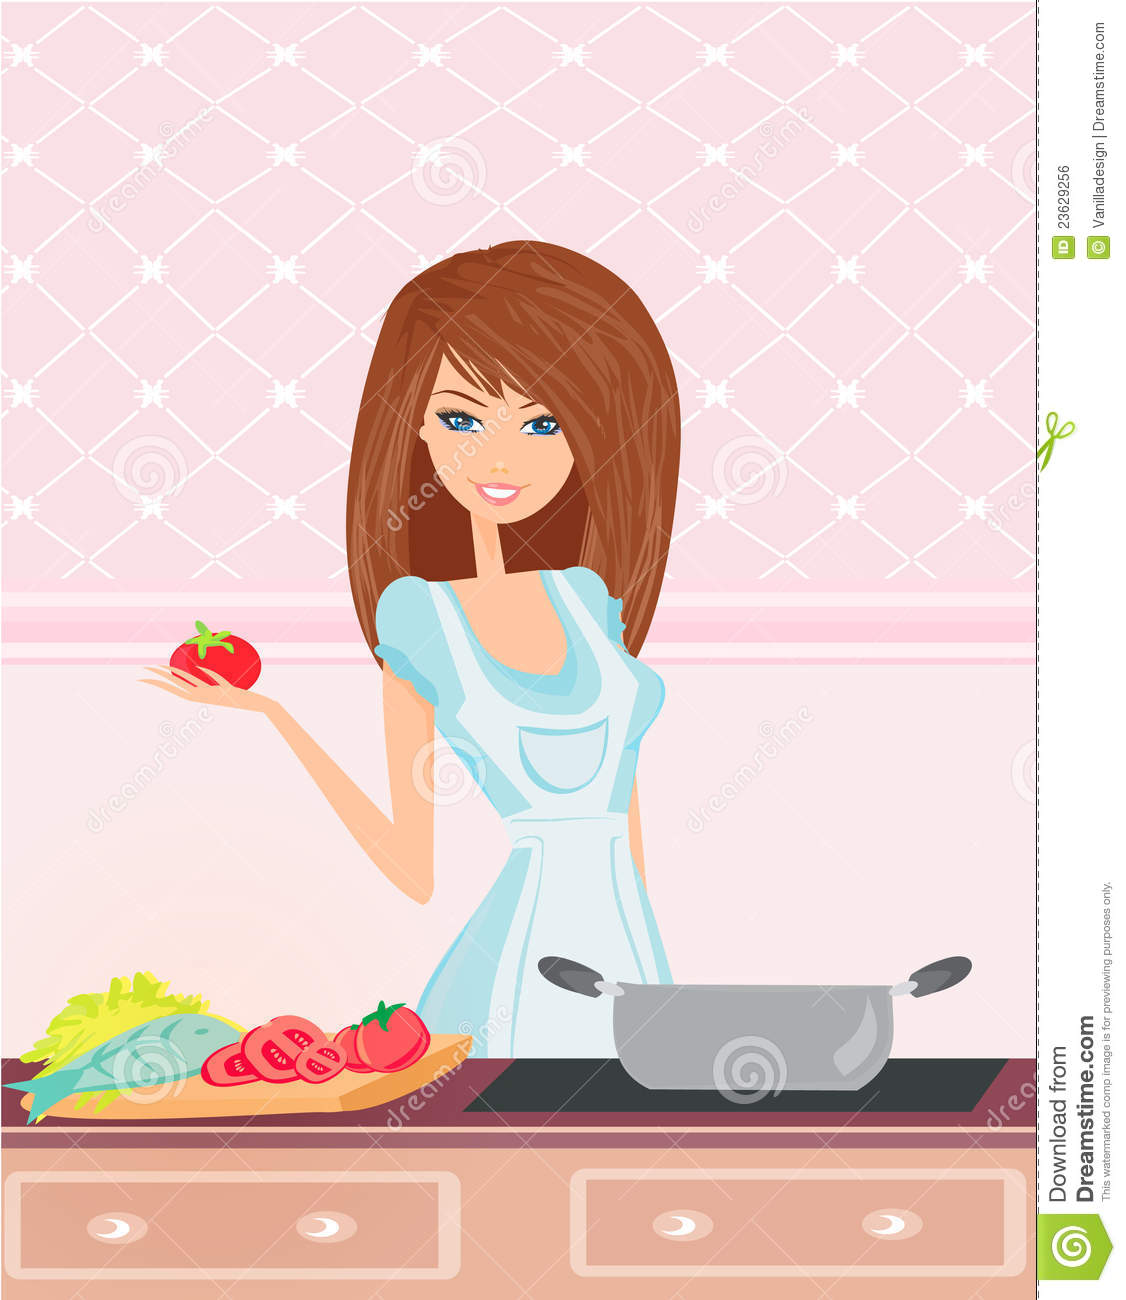 Free Animated Woman Clipart